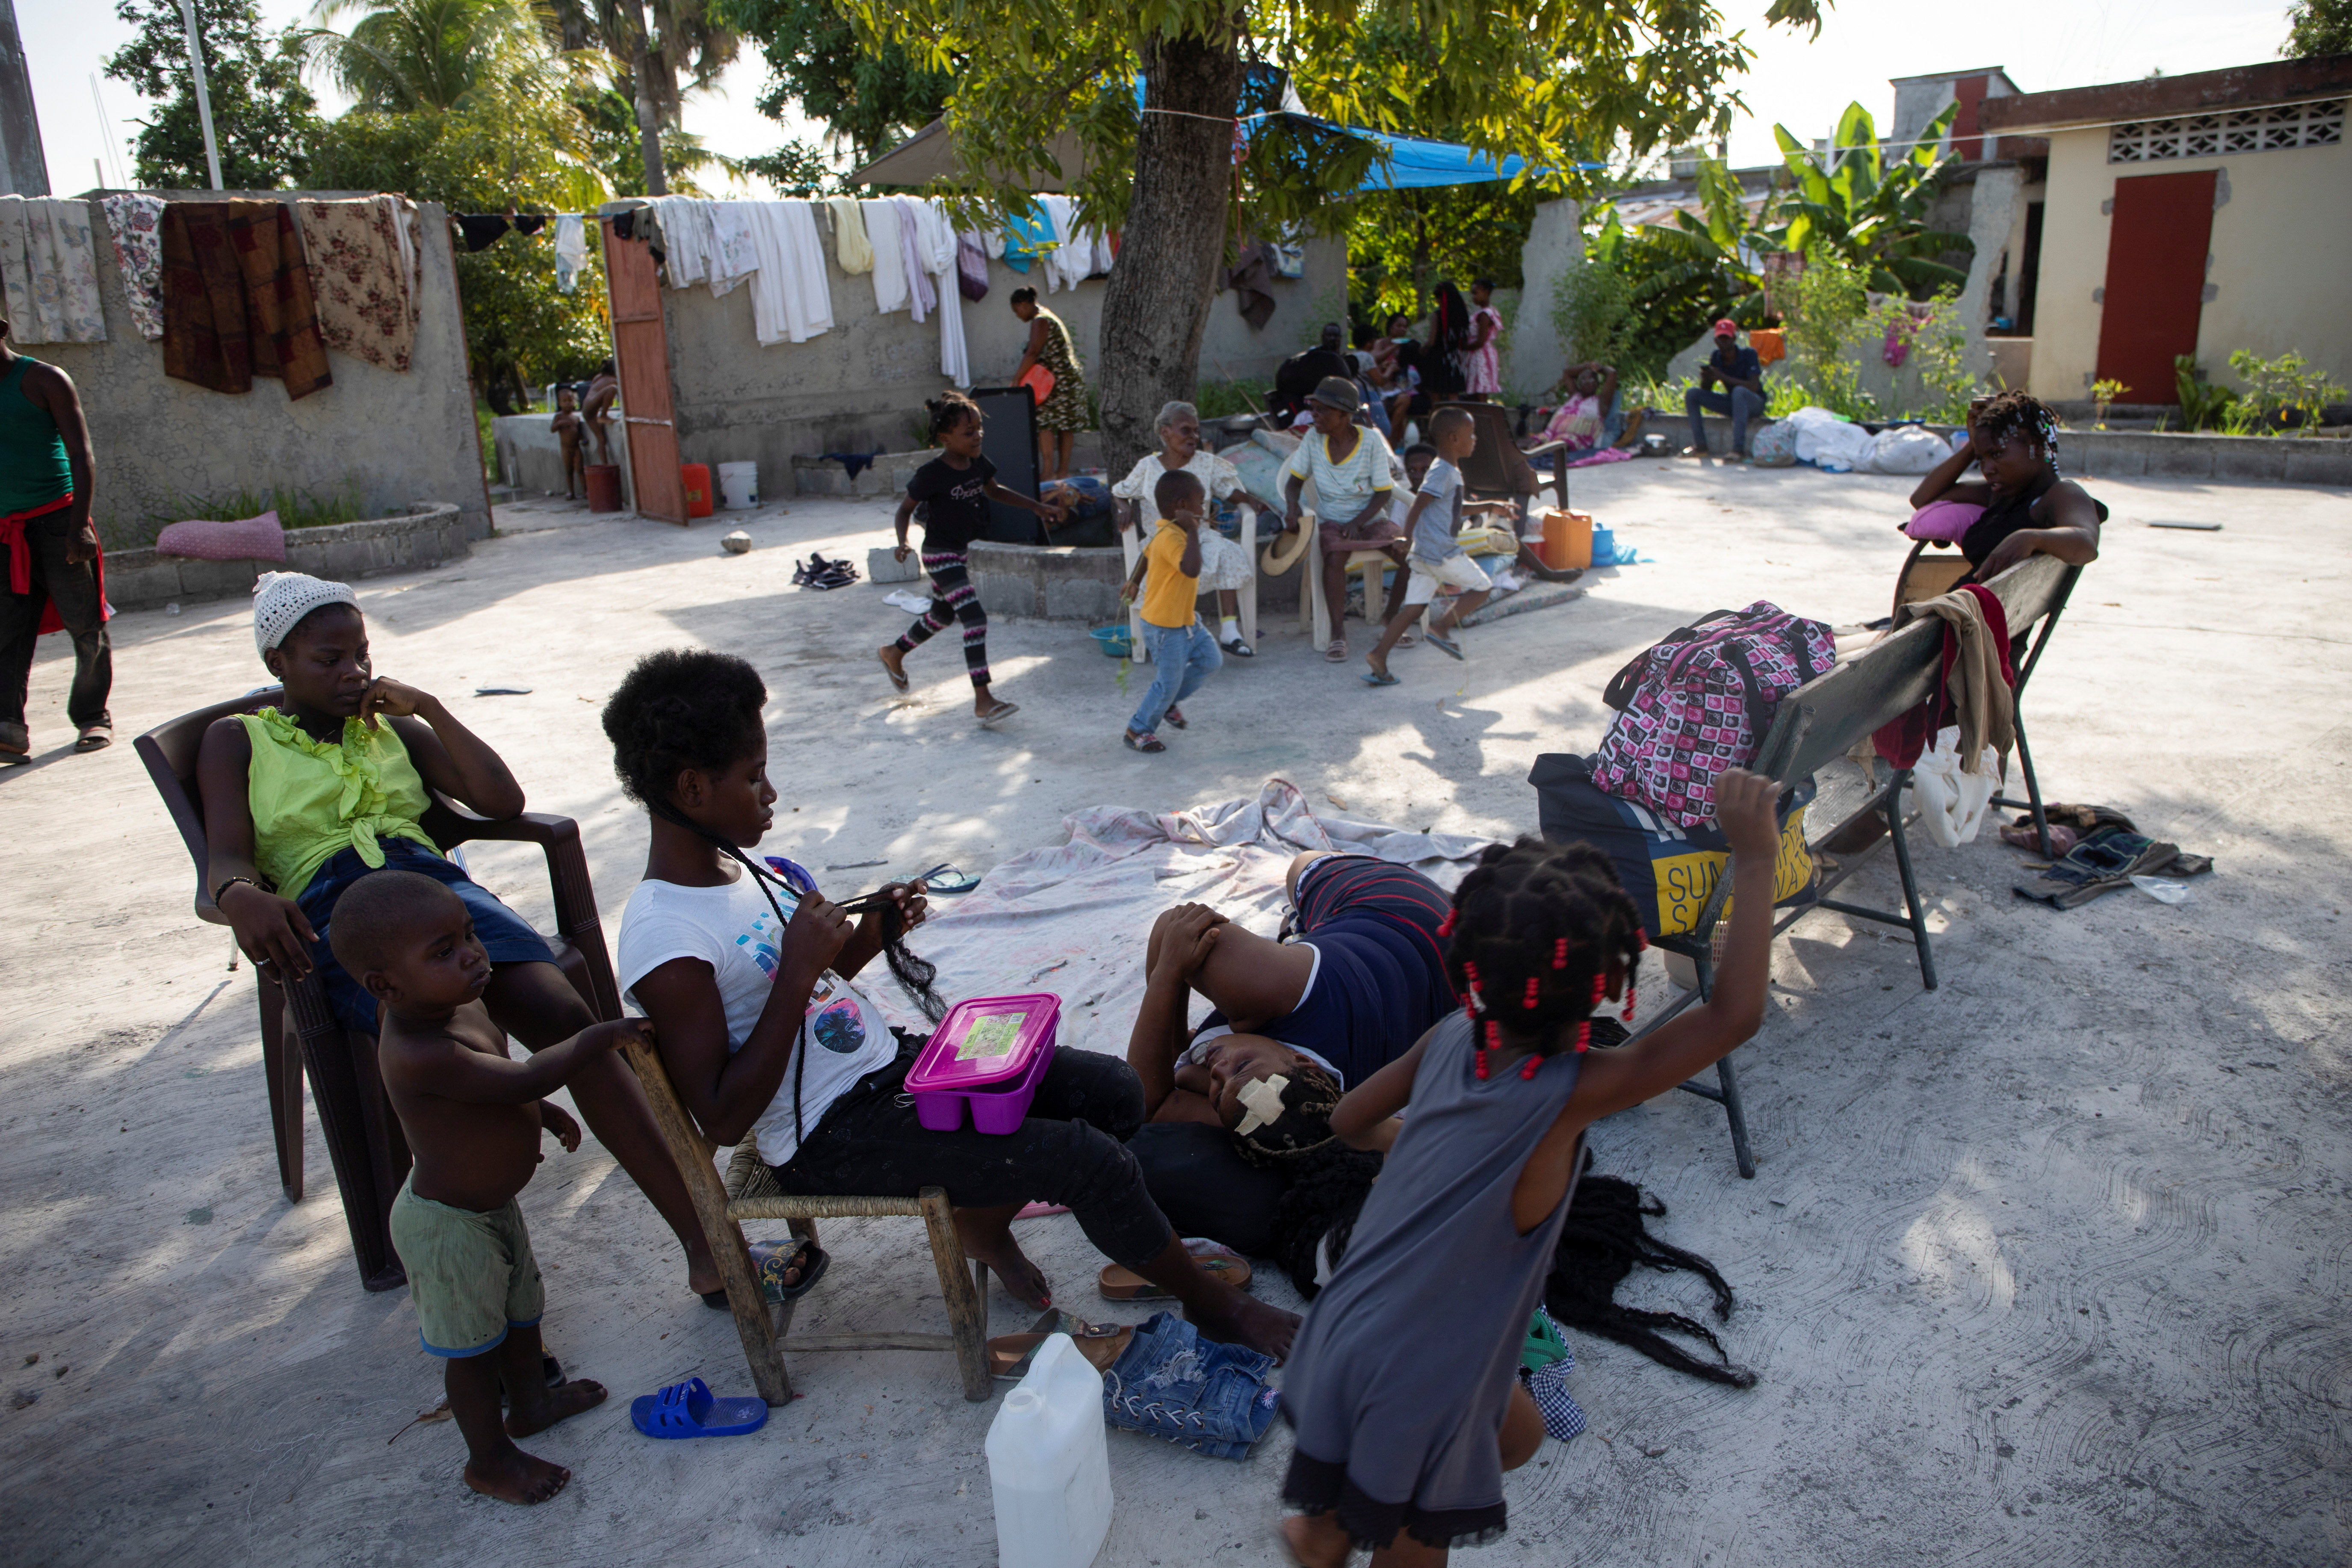 People are pictured on a street after a 7.2 magnitude earthquake in Les Cayes, Haiti August 15, 2021.  REUTERS/Estailove St-Val